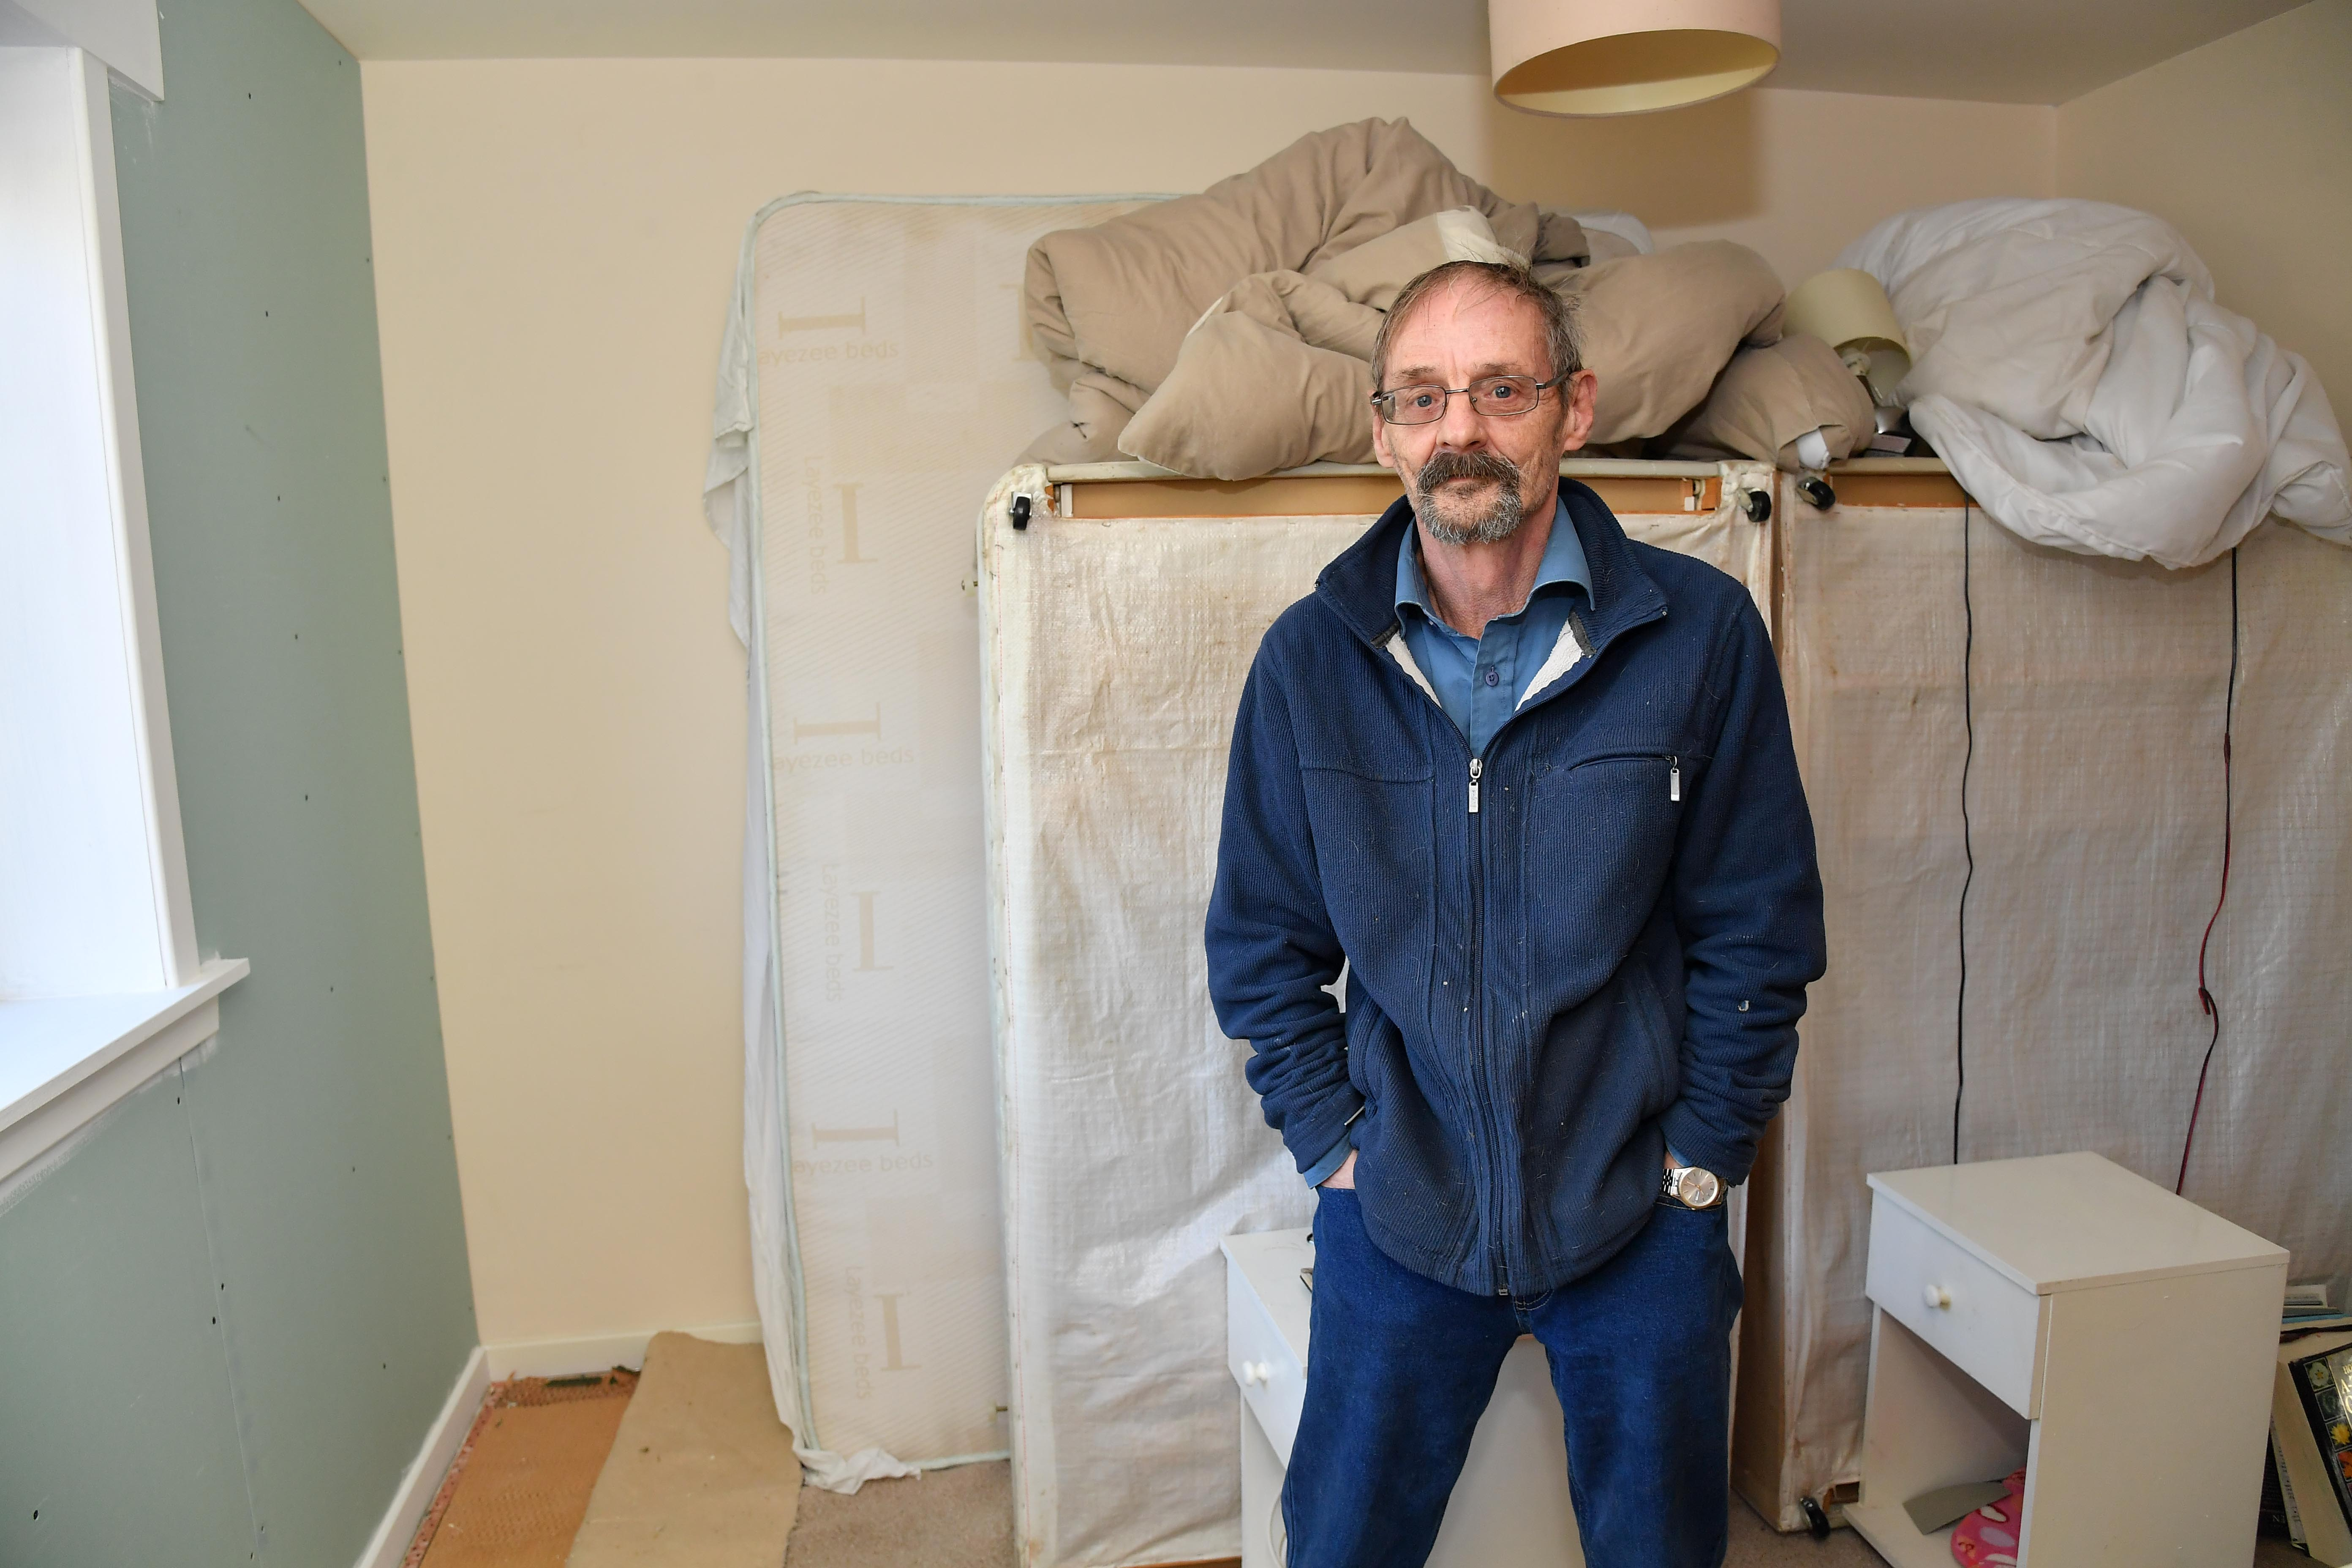 KEVIN BAXTER CAN'T USE HIS BEDROOM UNTIL WORKS TO CORRECT A DAMP PROBLEM ARE COMPLETED.